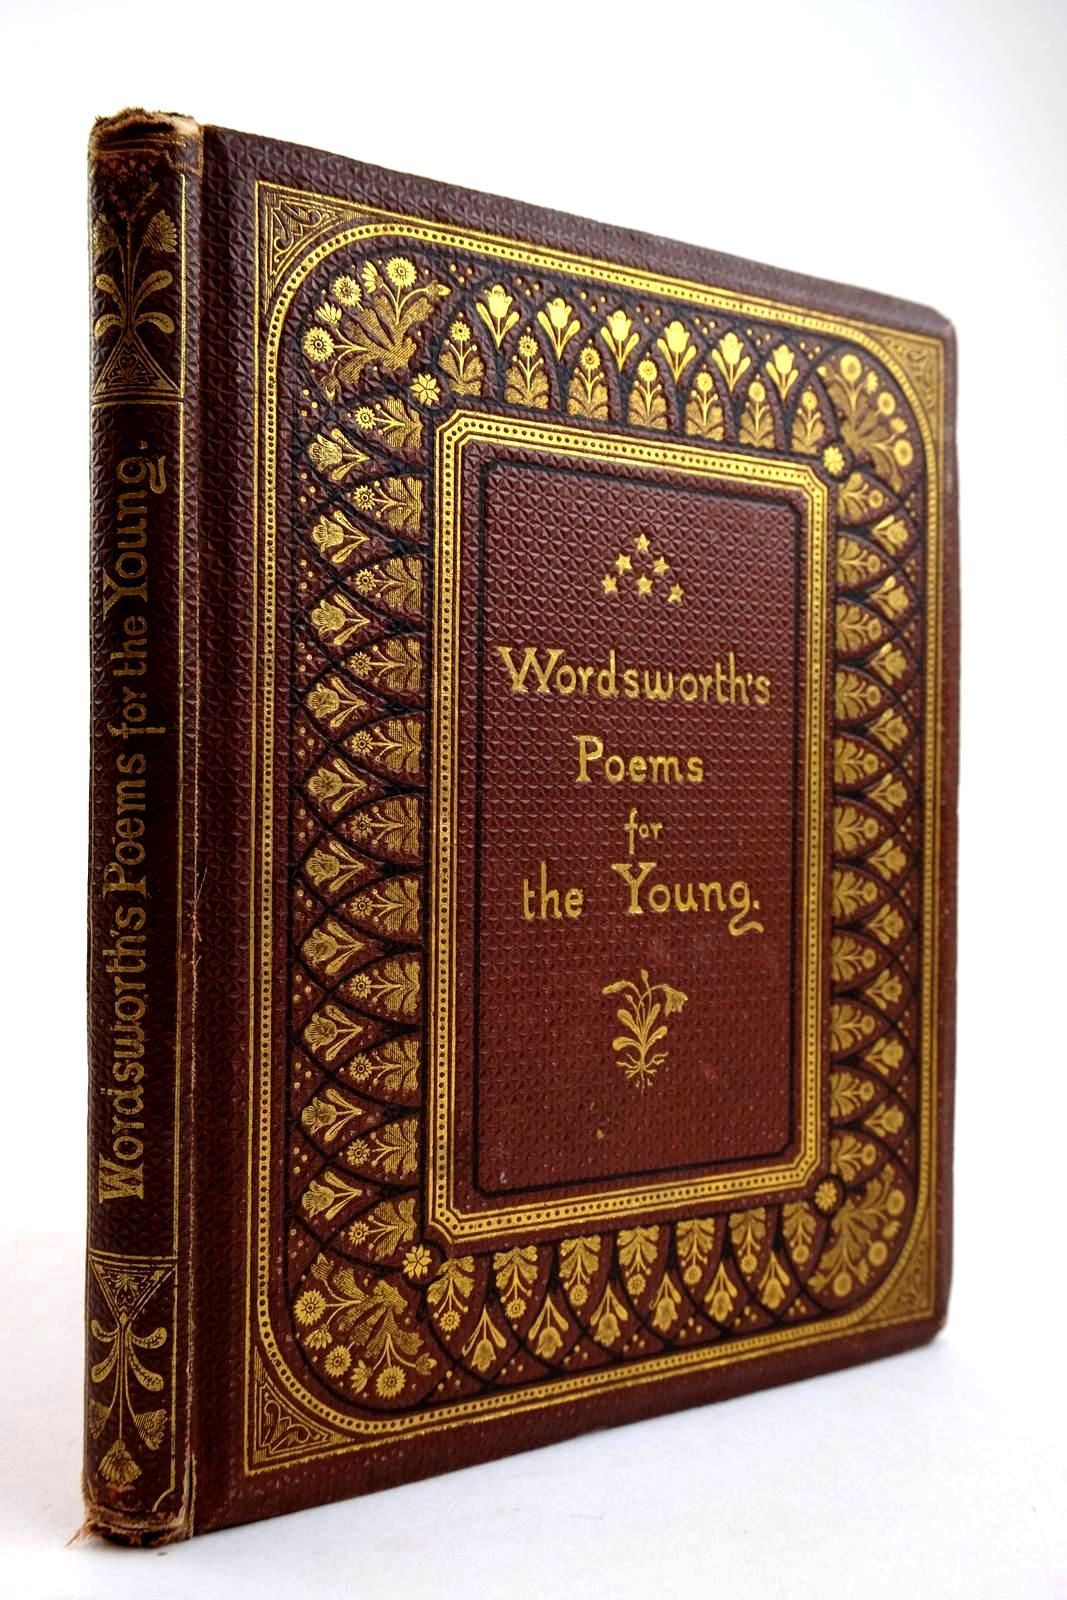 Photo of WORDSWORTH'S POEMS FOR THE YOUNG written by Wordsworth, William illustrated by MacWhirter, John Pettie, John Millais, J.E. published by Alexander Strahan & Co. (STOCK CODE: 2134264)  for sale by Stella & Rose's Books